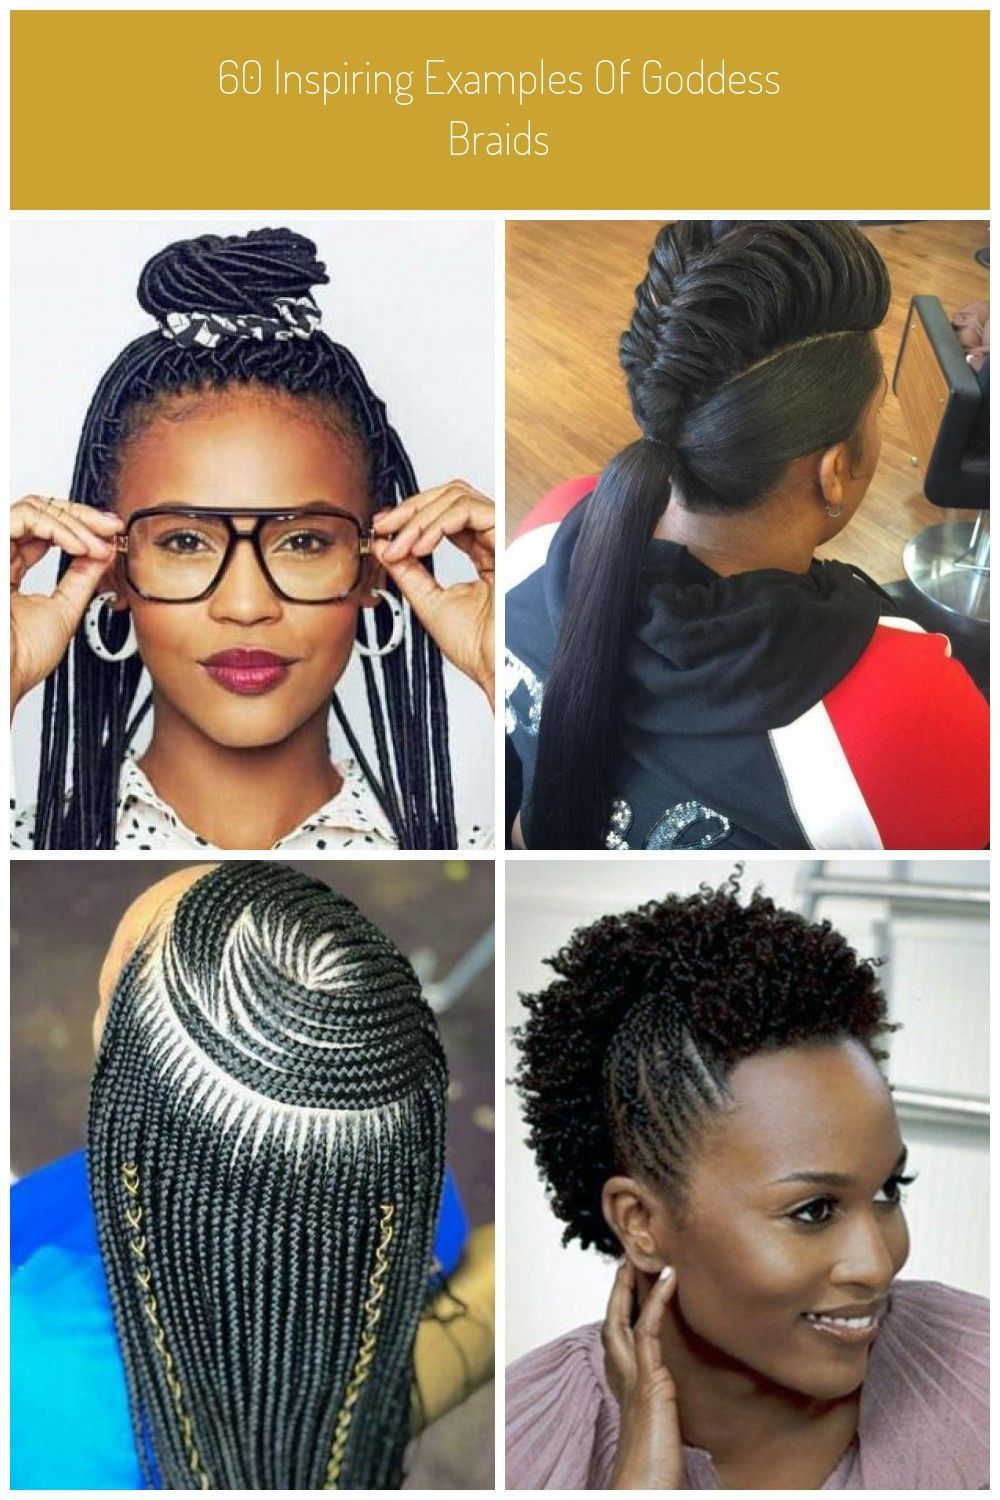 Newest Pictures 23 Exotic Braided Bun Hairstyles For Black Hair - Braided Updo Hairstyles For Bl...  Tips  Braids are likely one of many oldest hairst... - #black #braided #exotic #hairstyles #newest #pictures - #new #bunshairstylesforblackwomen